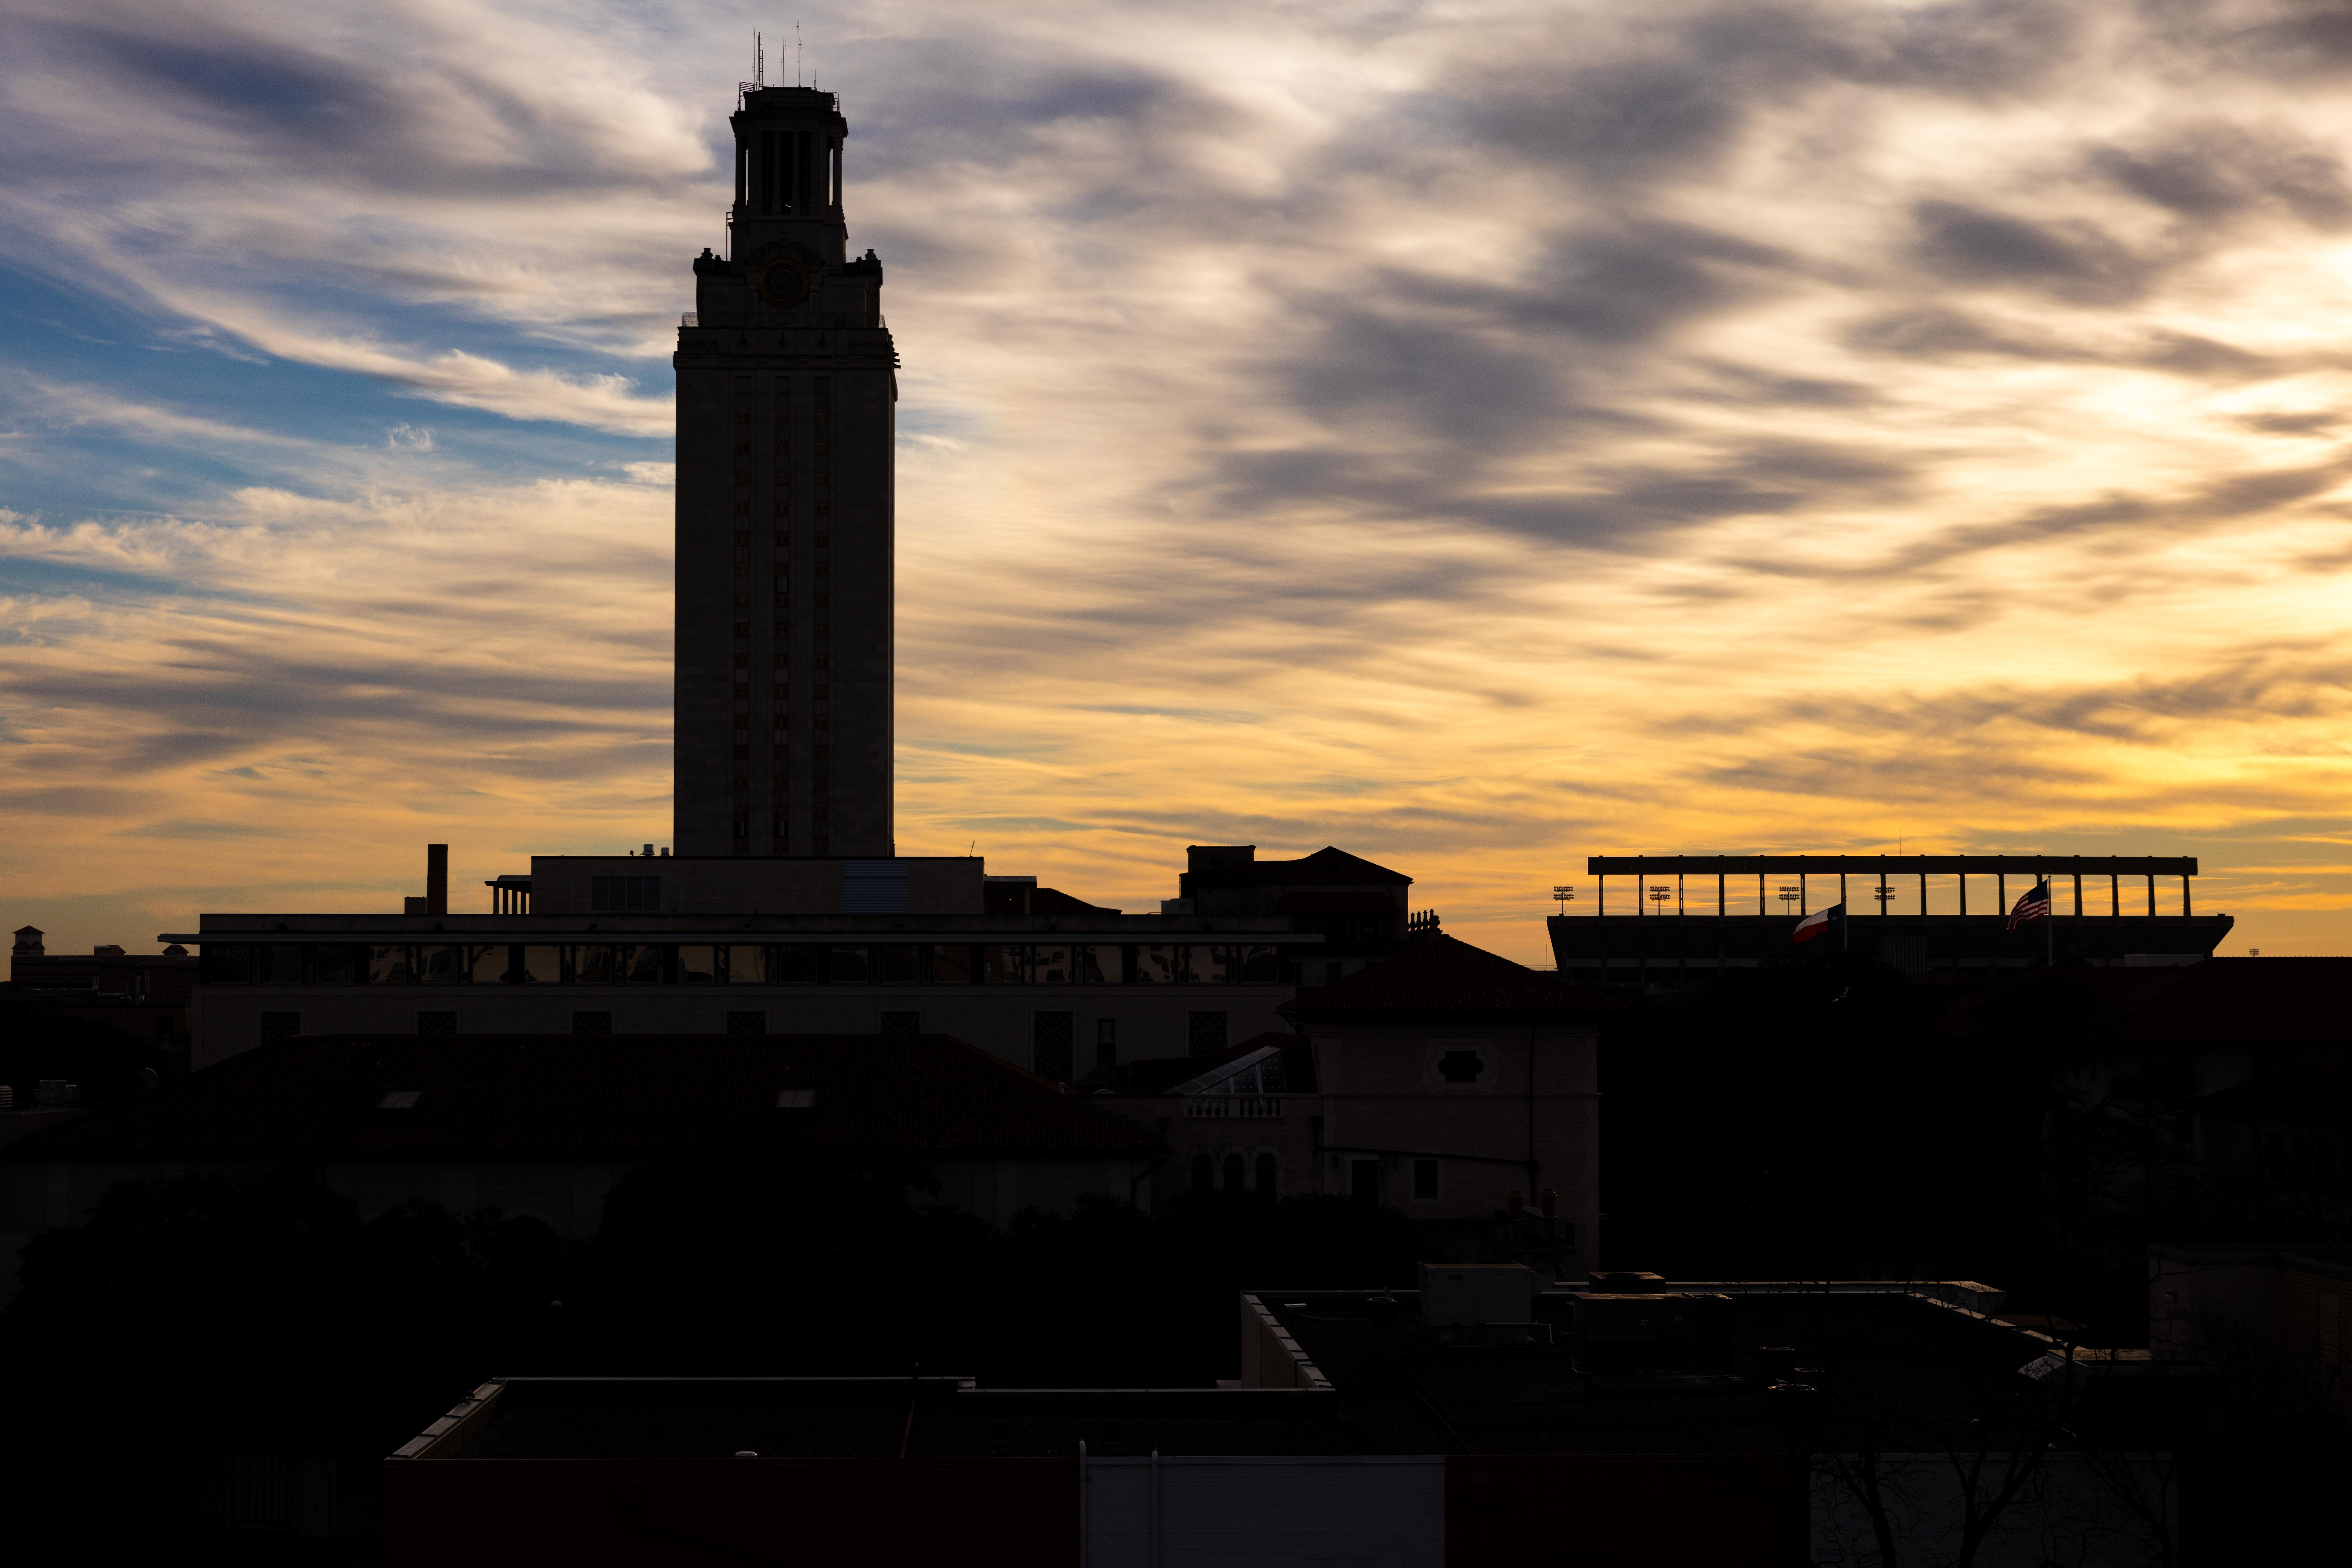 The Tower at The University of Texas at Austin